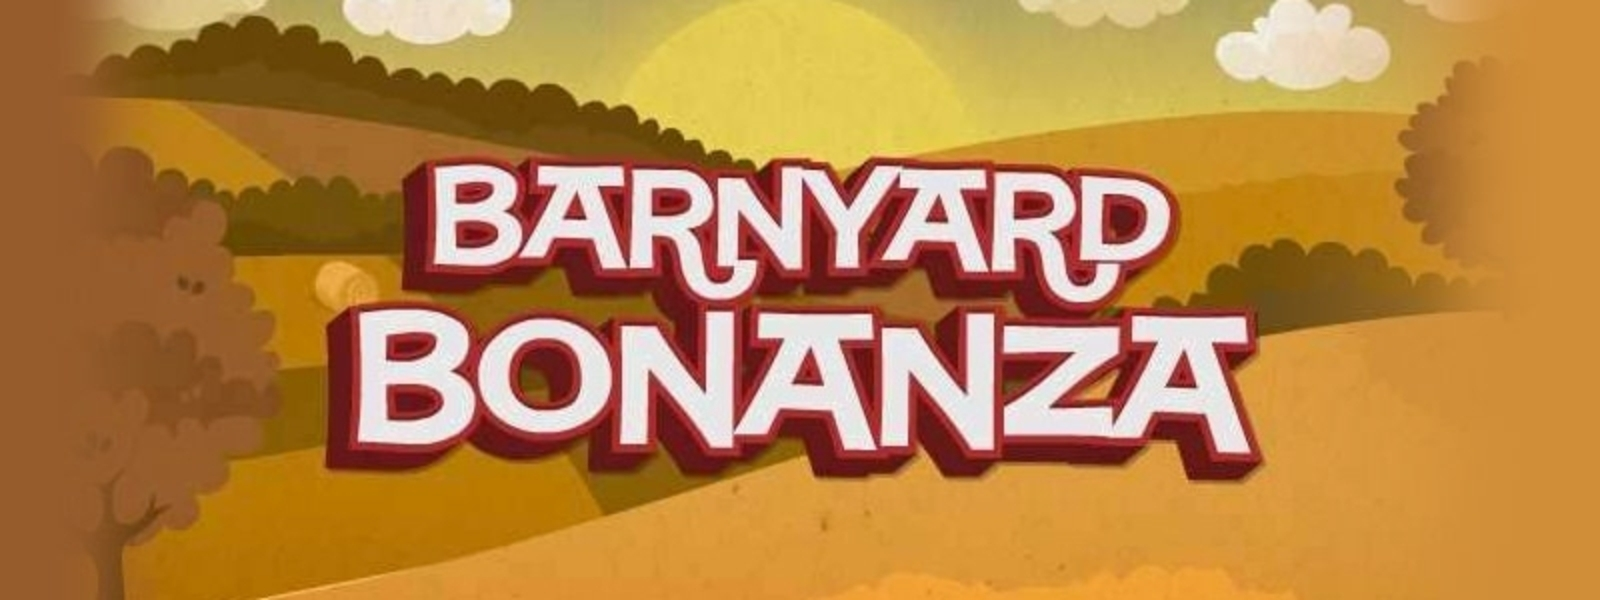 The Barnyard Bonanza (Gamesys) Online Slot Demo Game by Gamesys